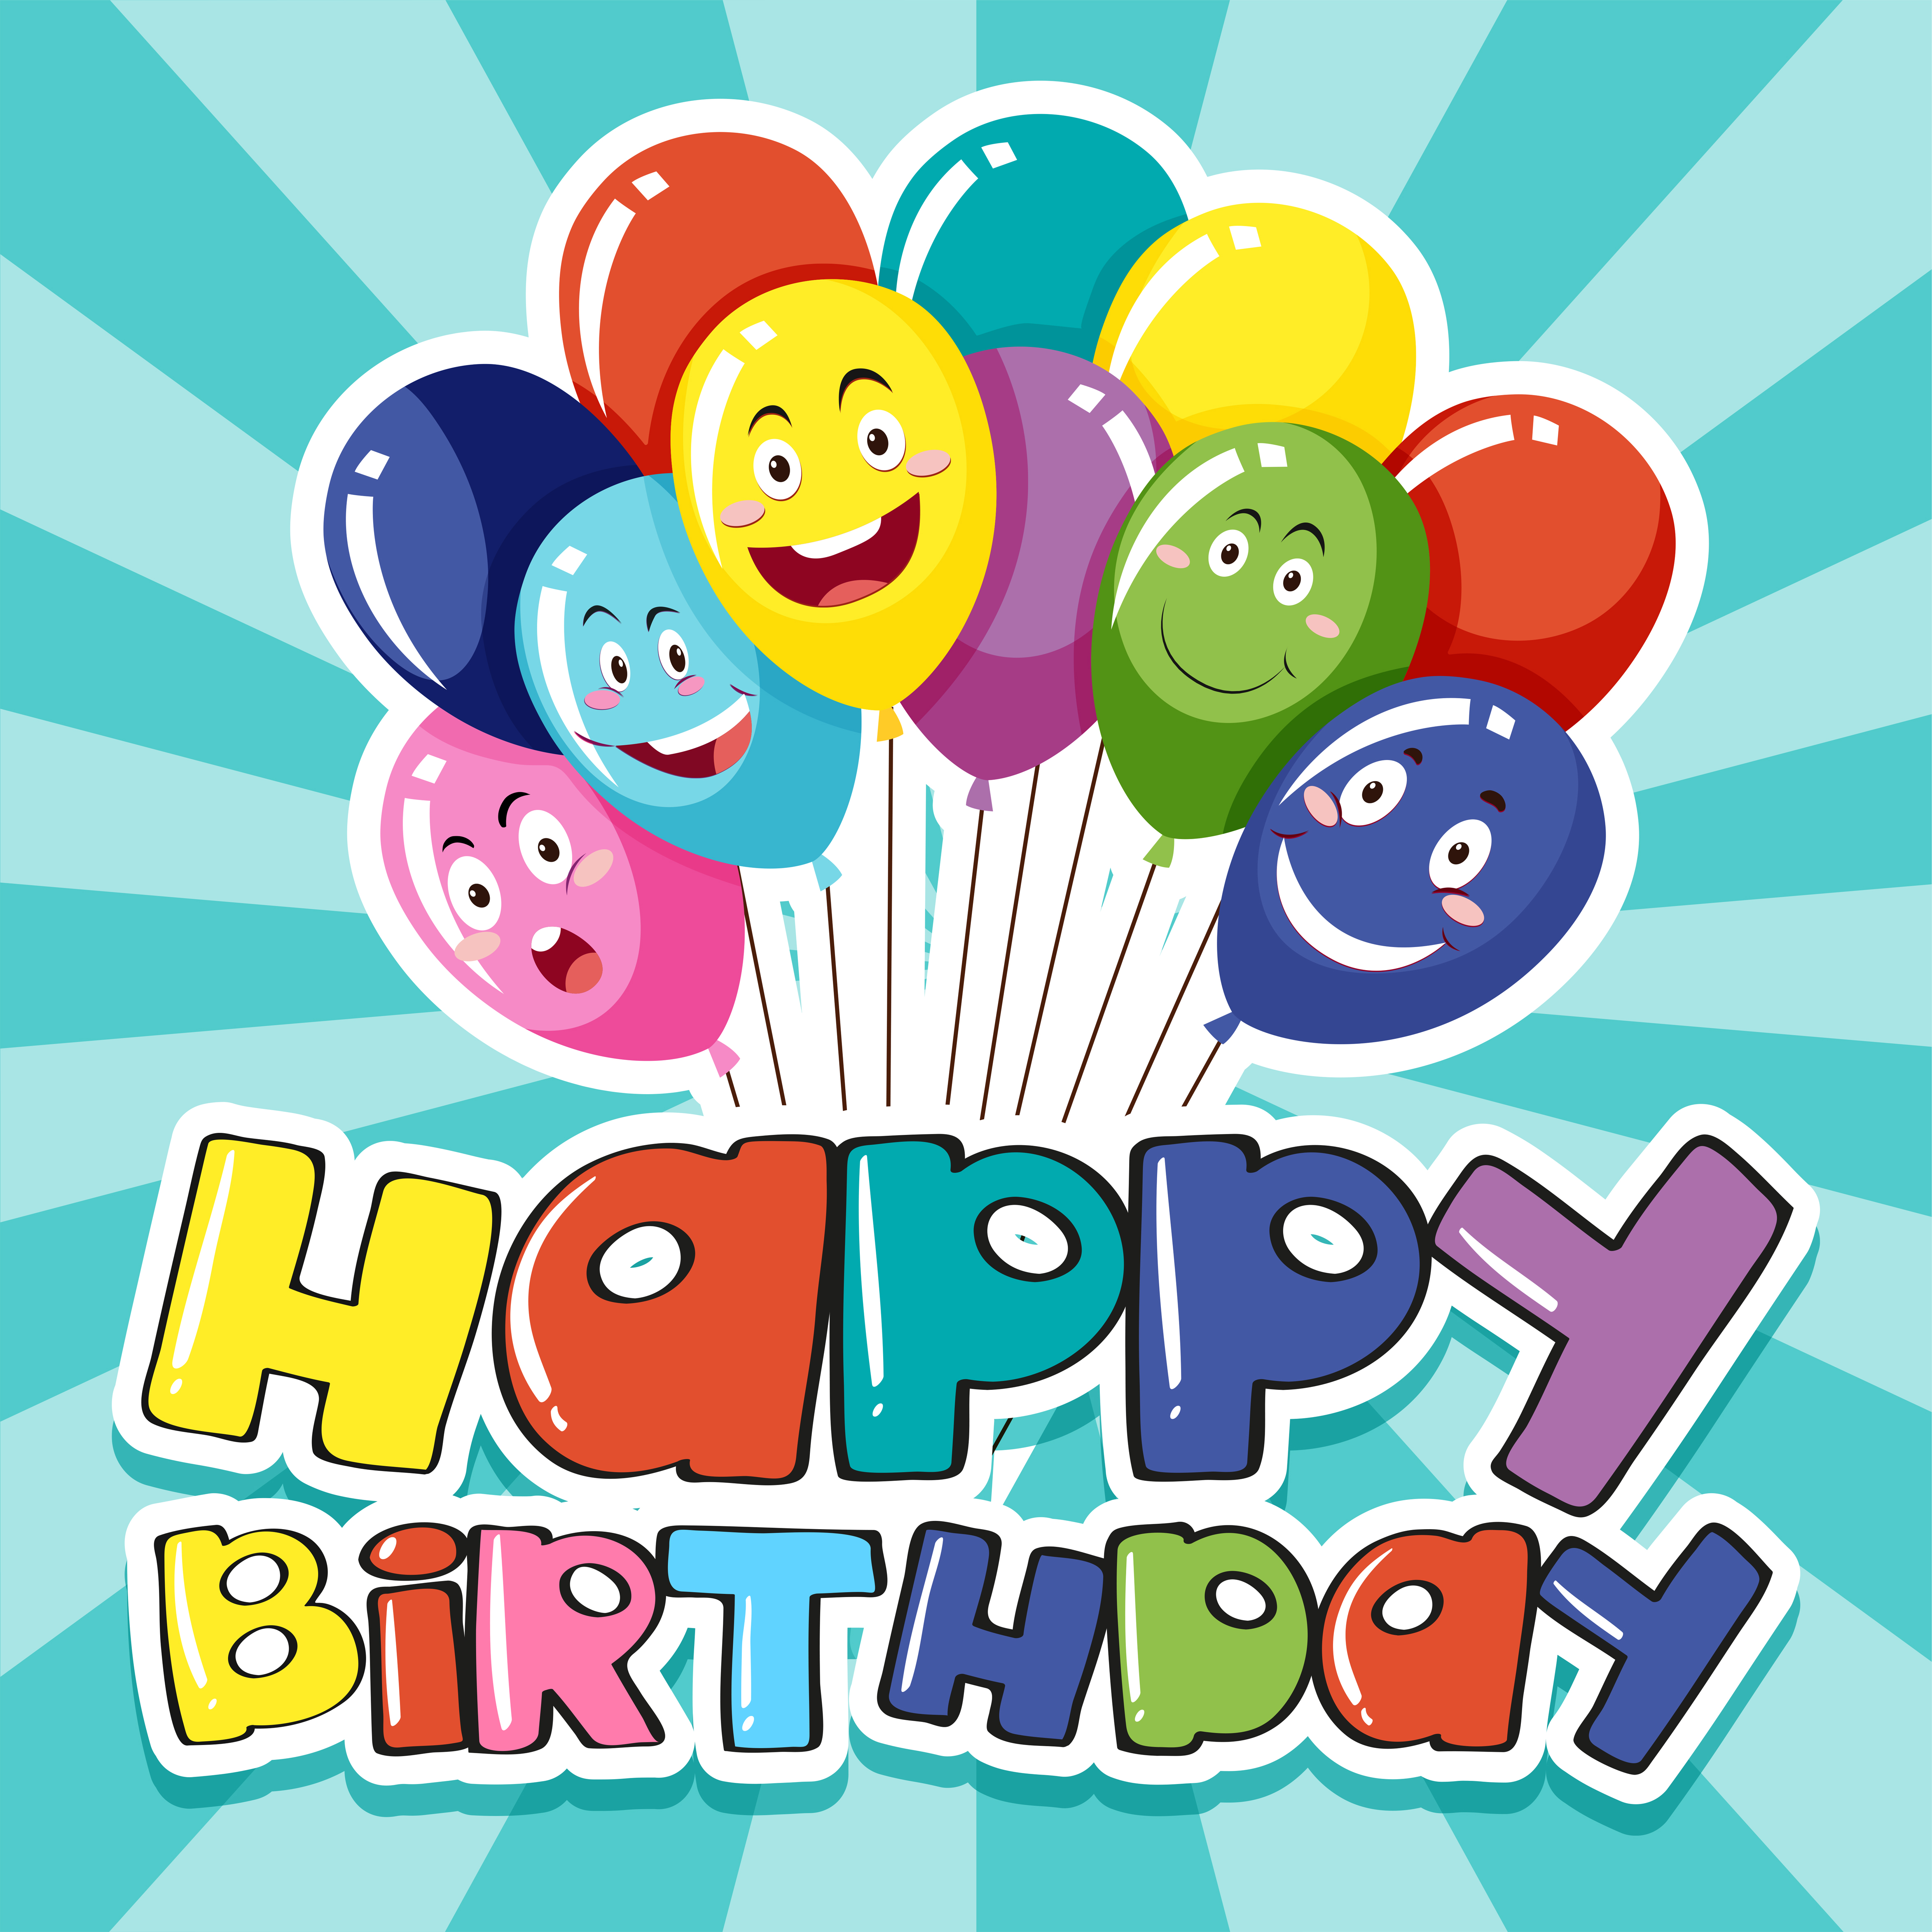 happy birthday card template with colorful balloons 299027